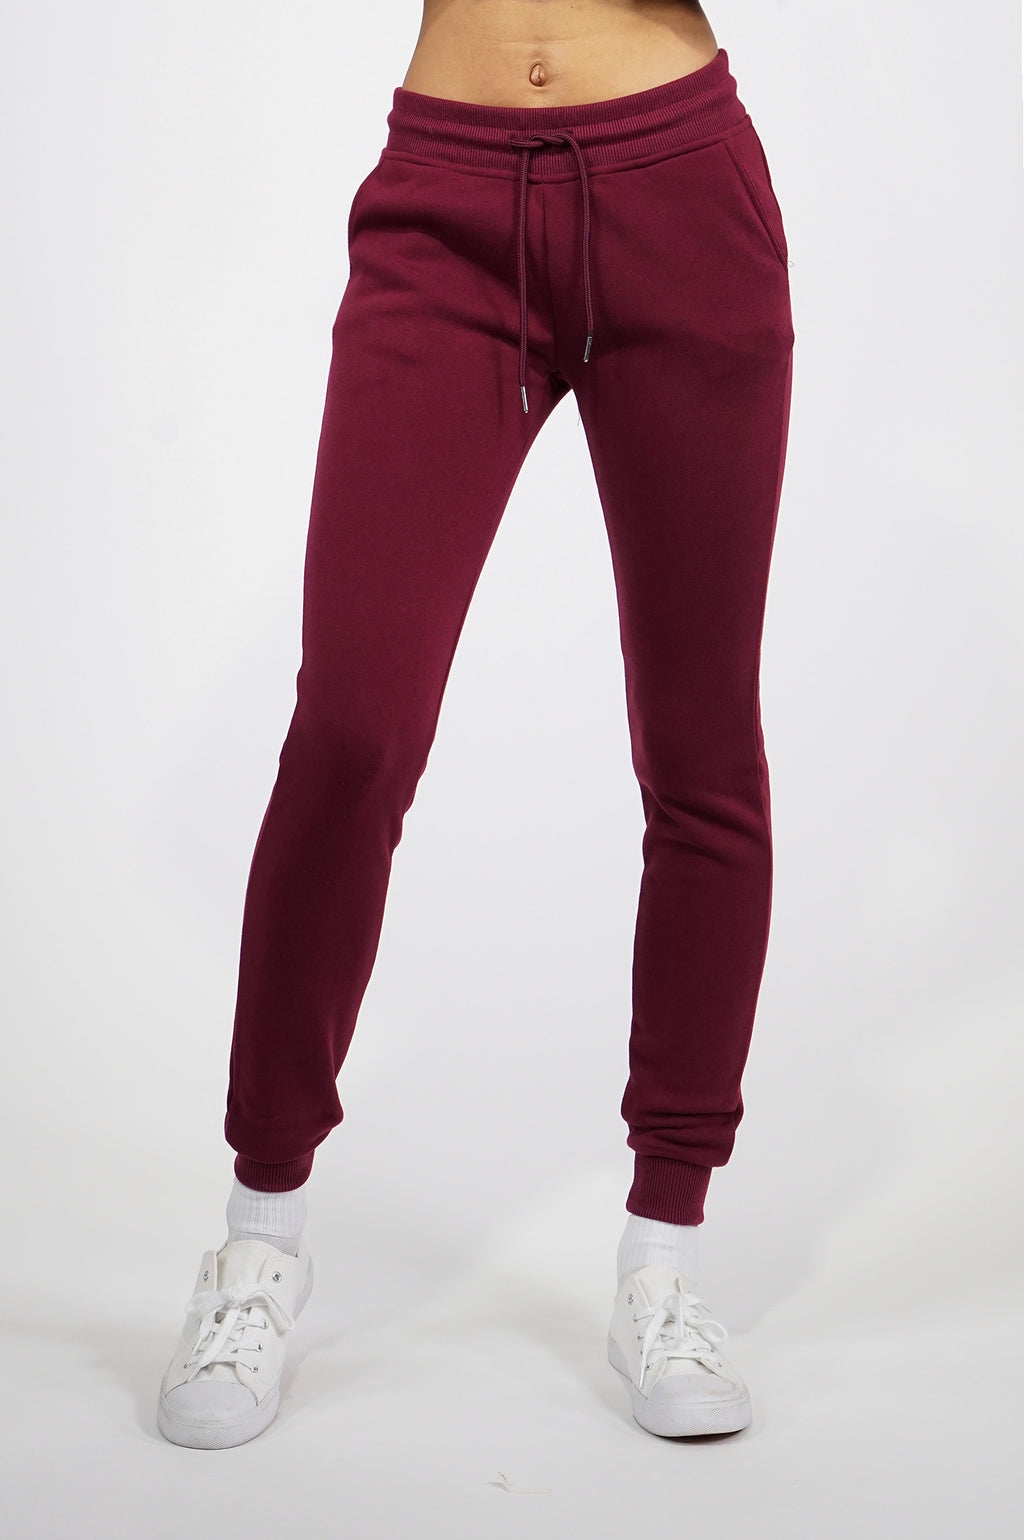 SOUTHPOLE WOMENS FLEECE BASIC JOGGER